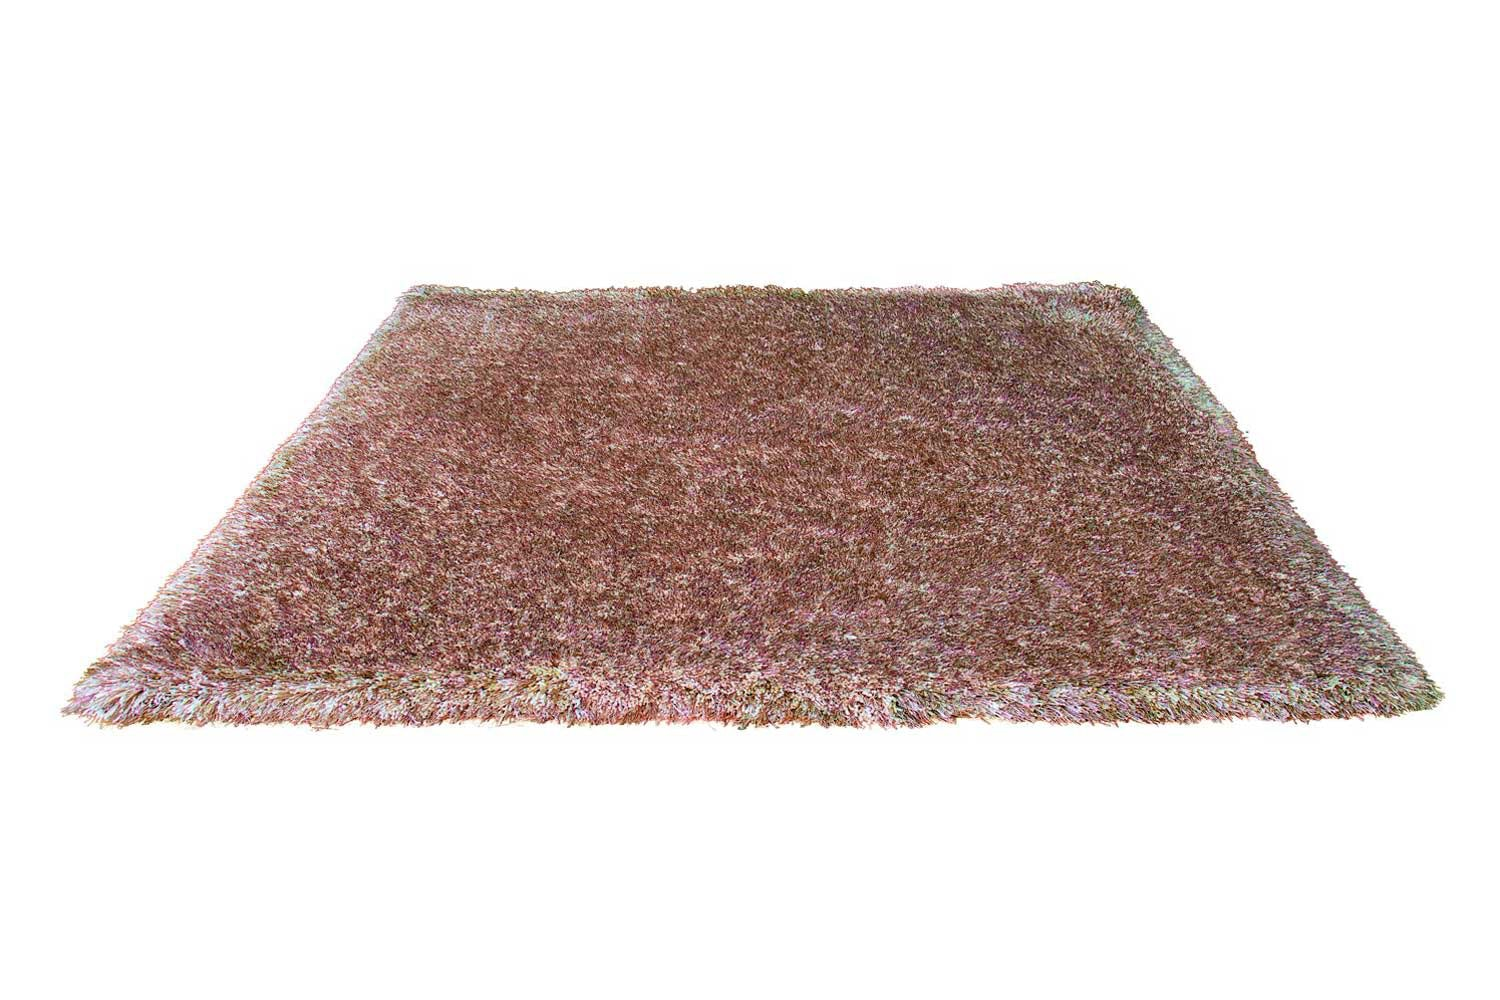 Tiffany Floor Rug - Mink